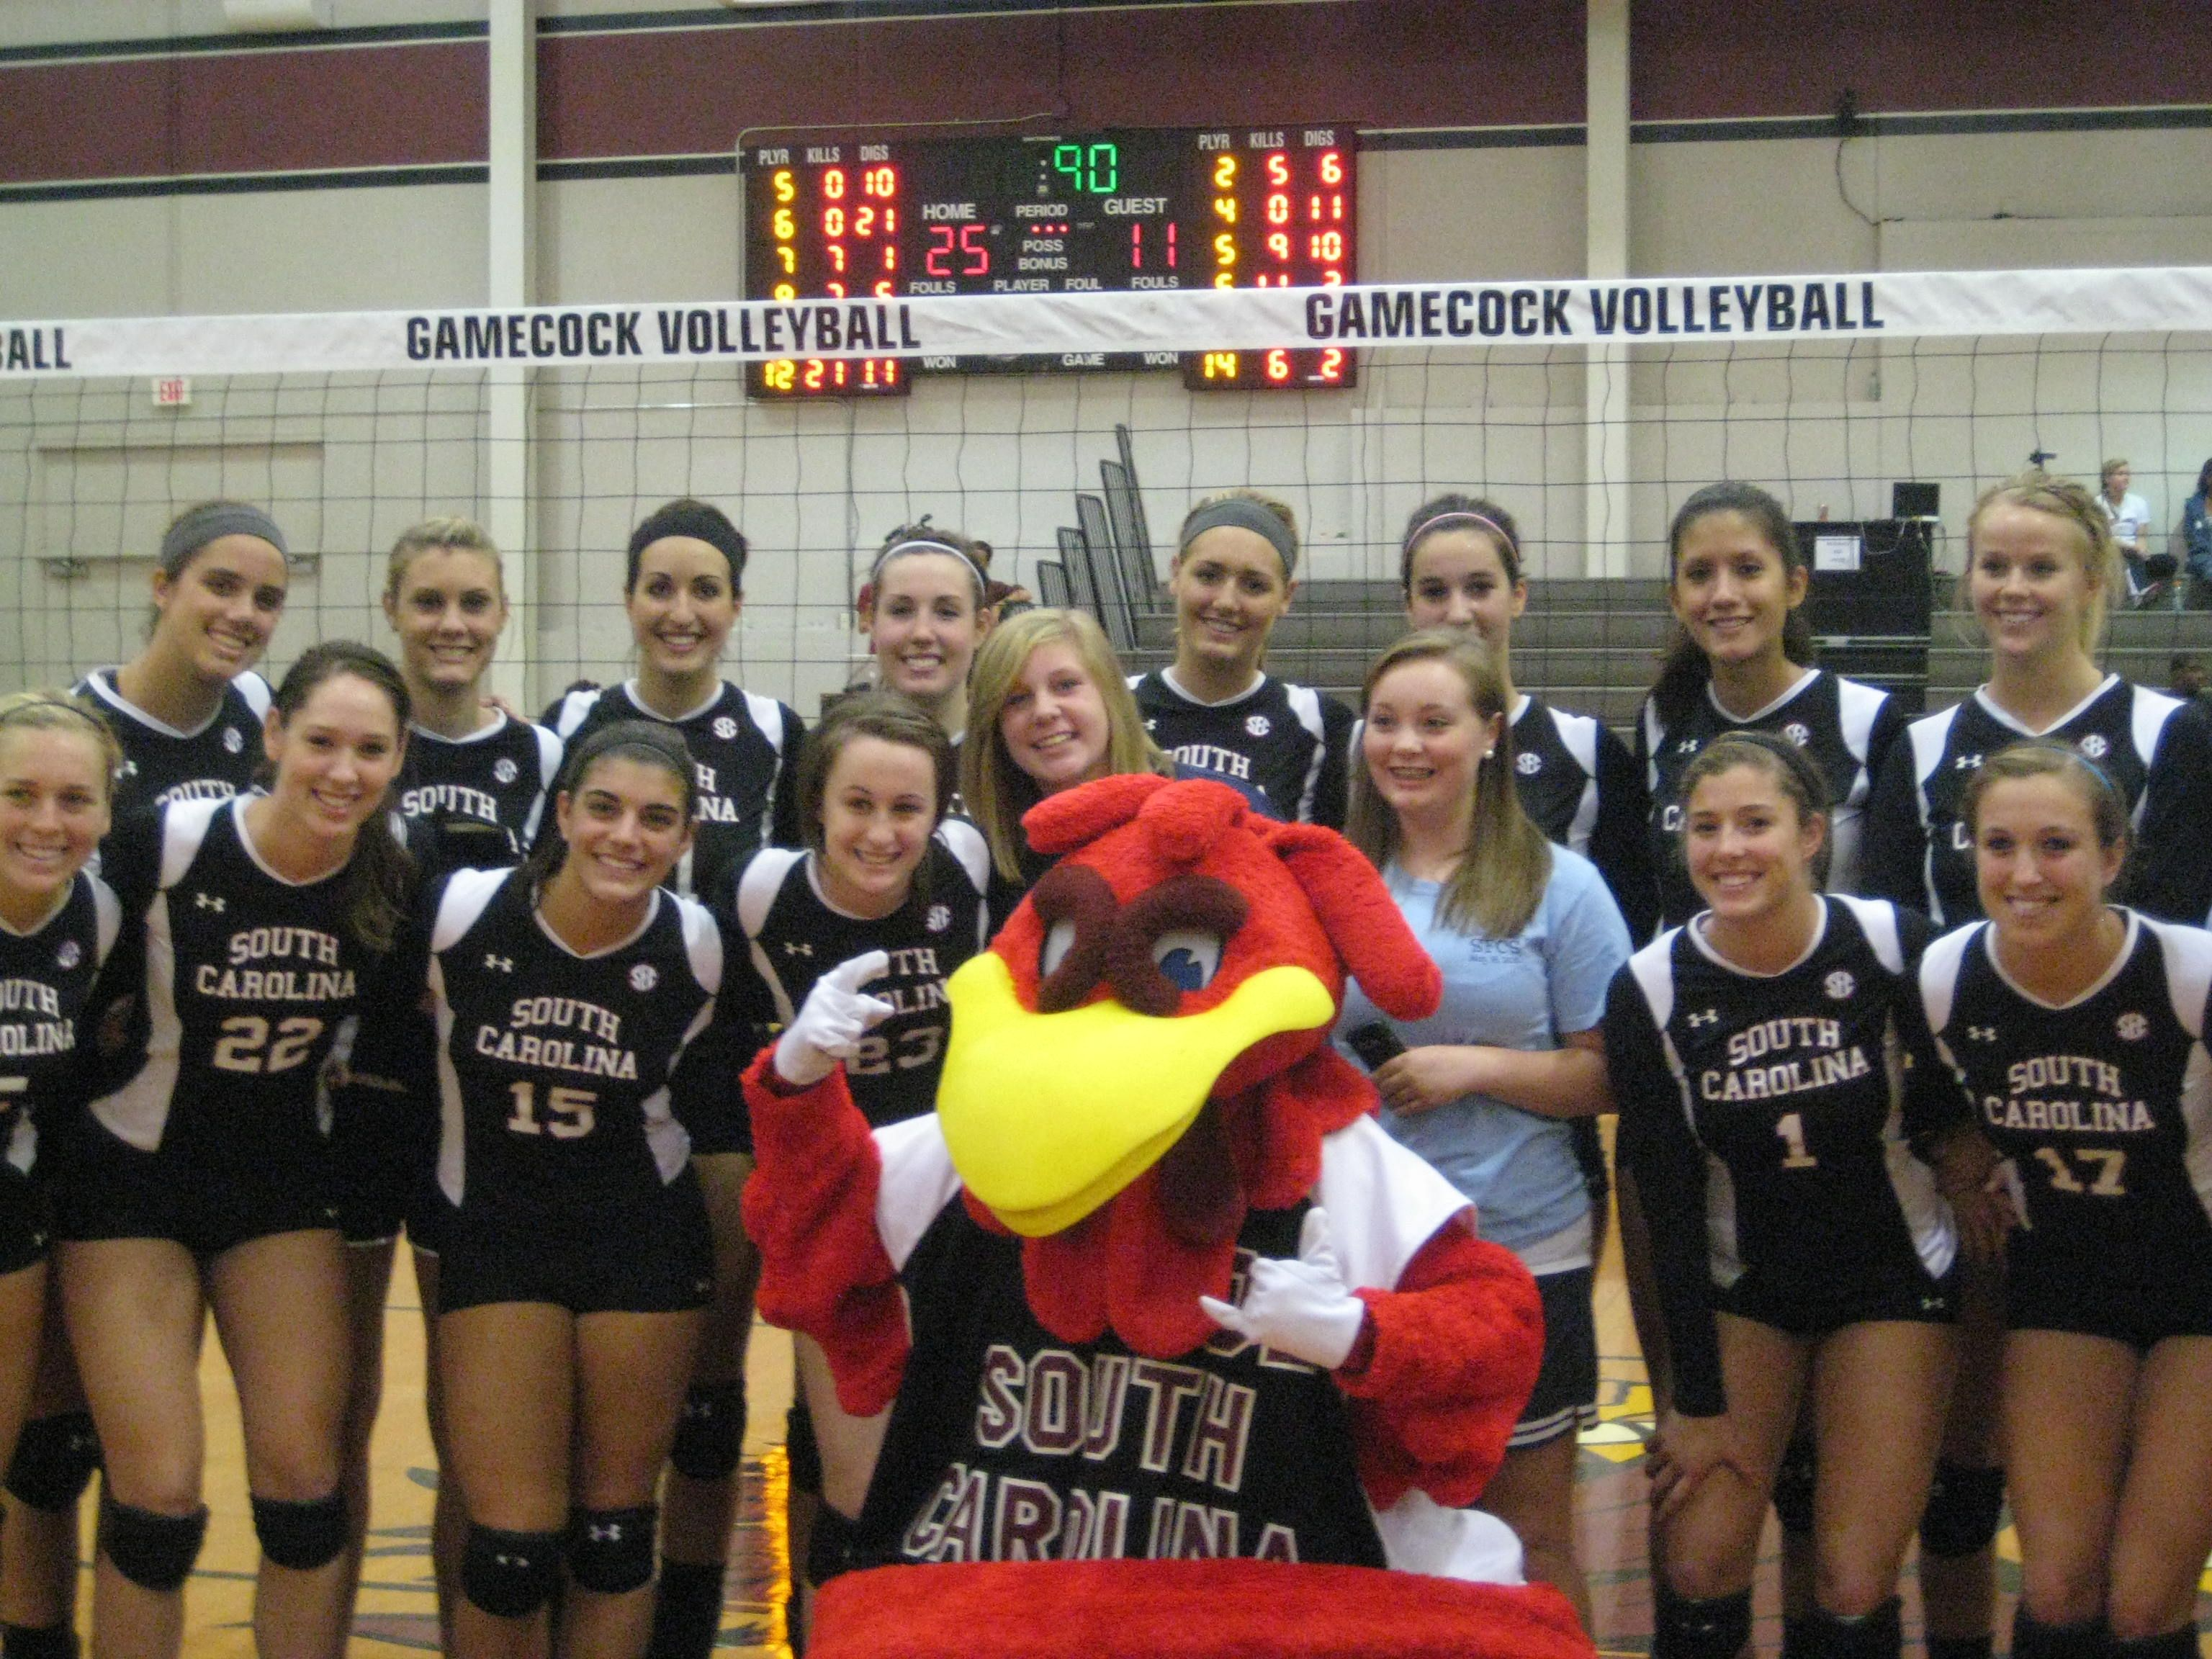 Gamecock Volleyball Volleyball Gamecocks Sports